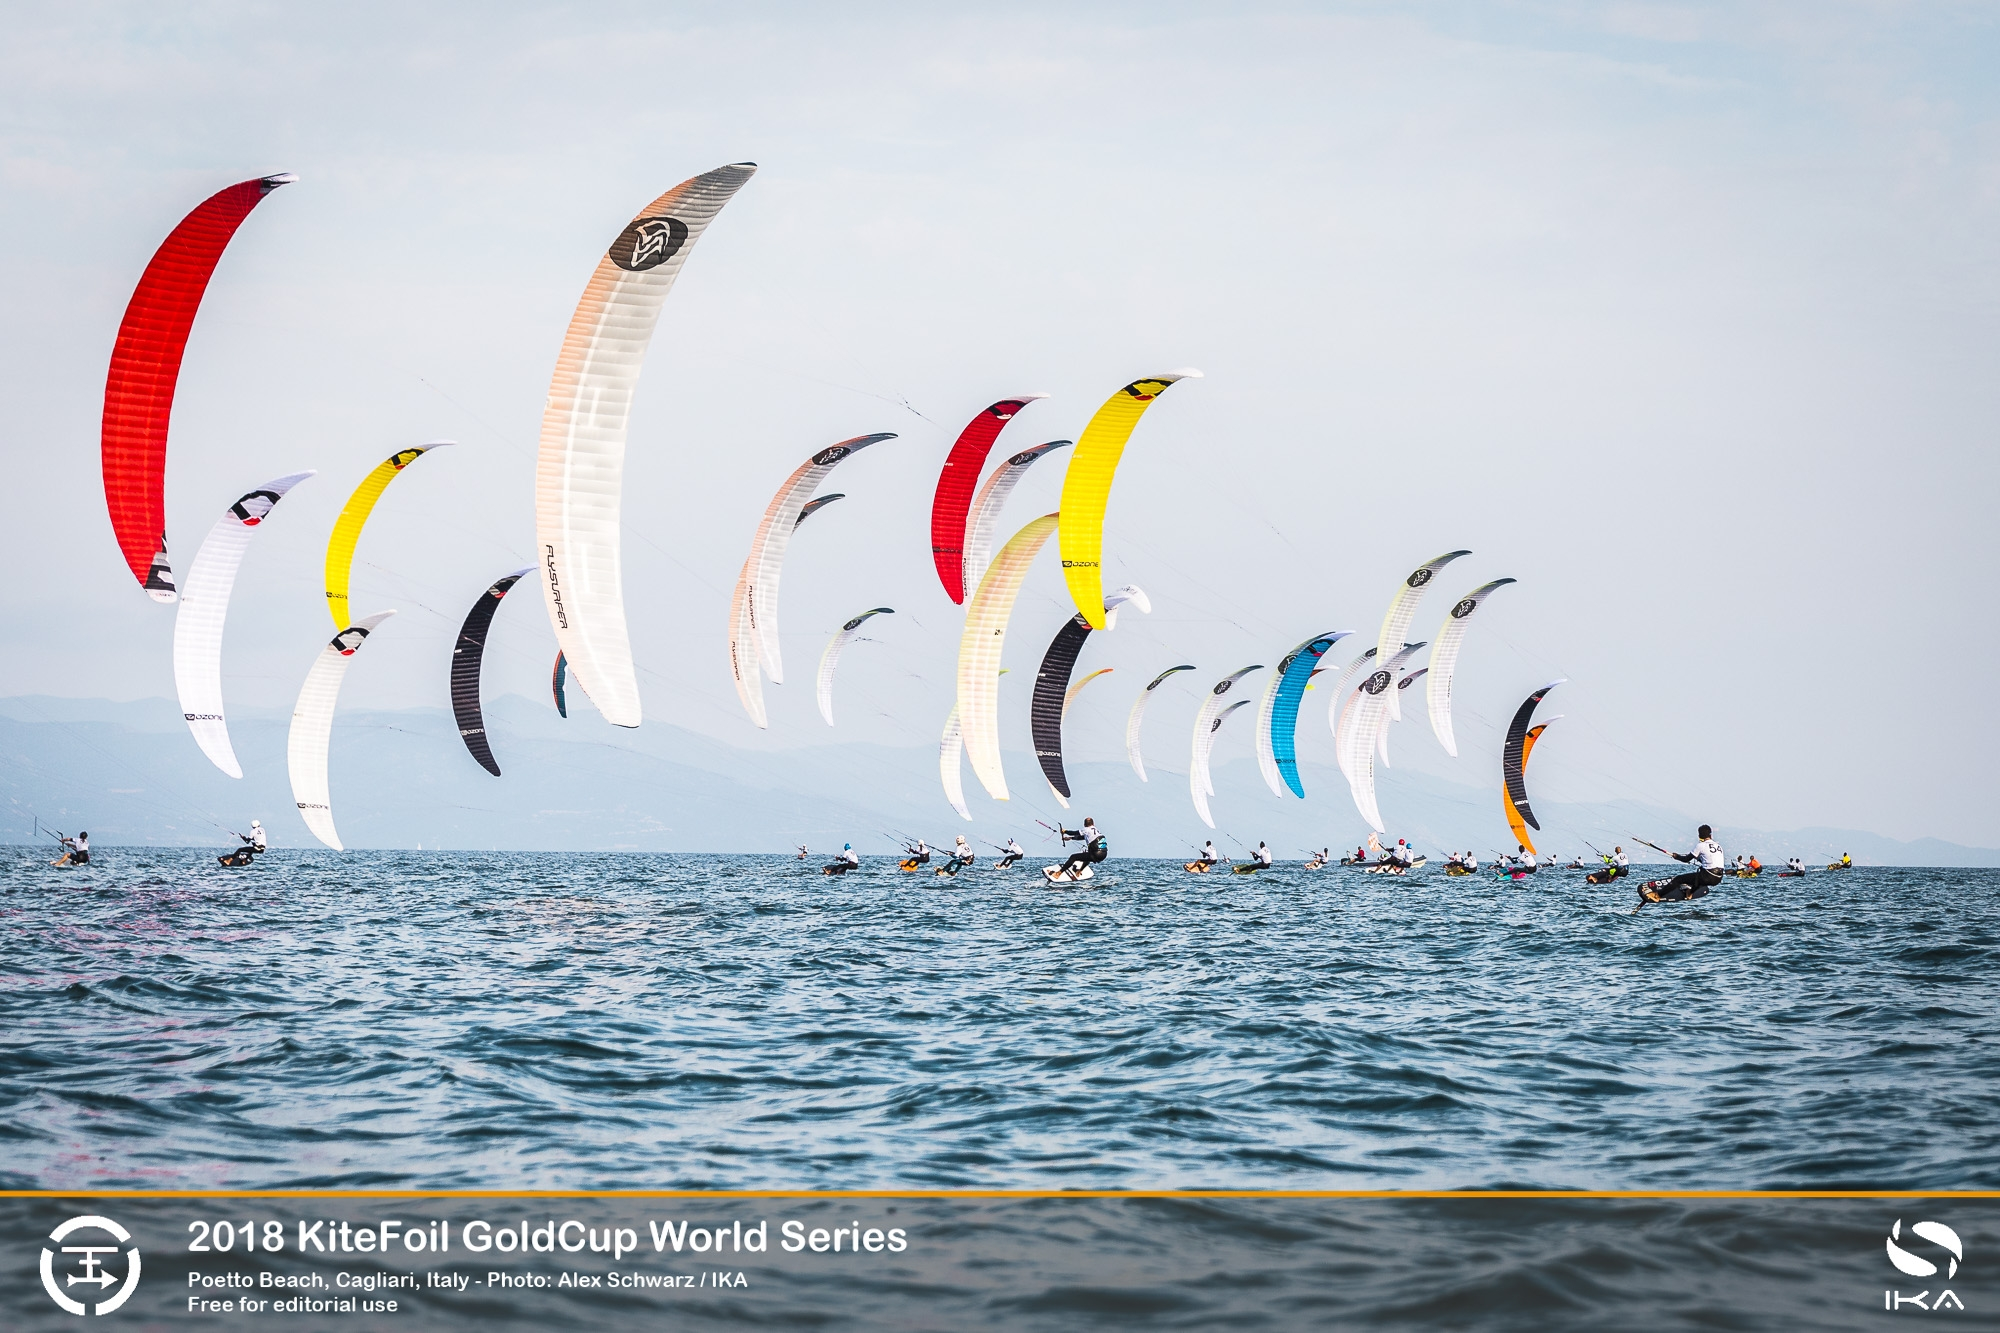 KiteFoil Series Final Gets Tighter at Top of Order in Light Breezes